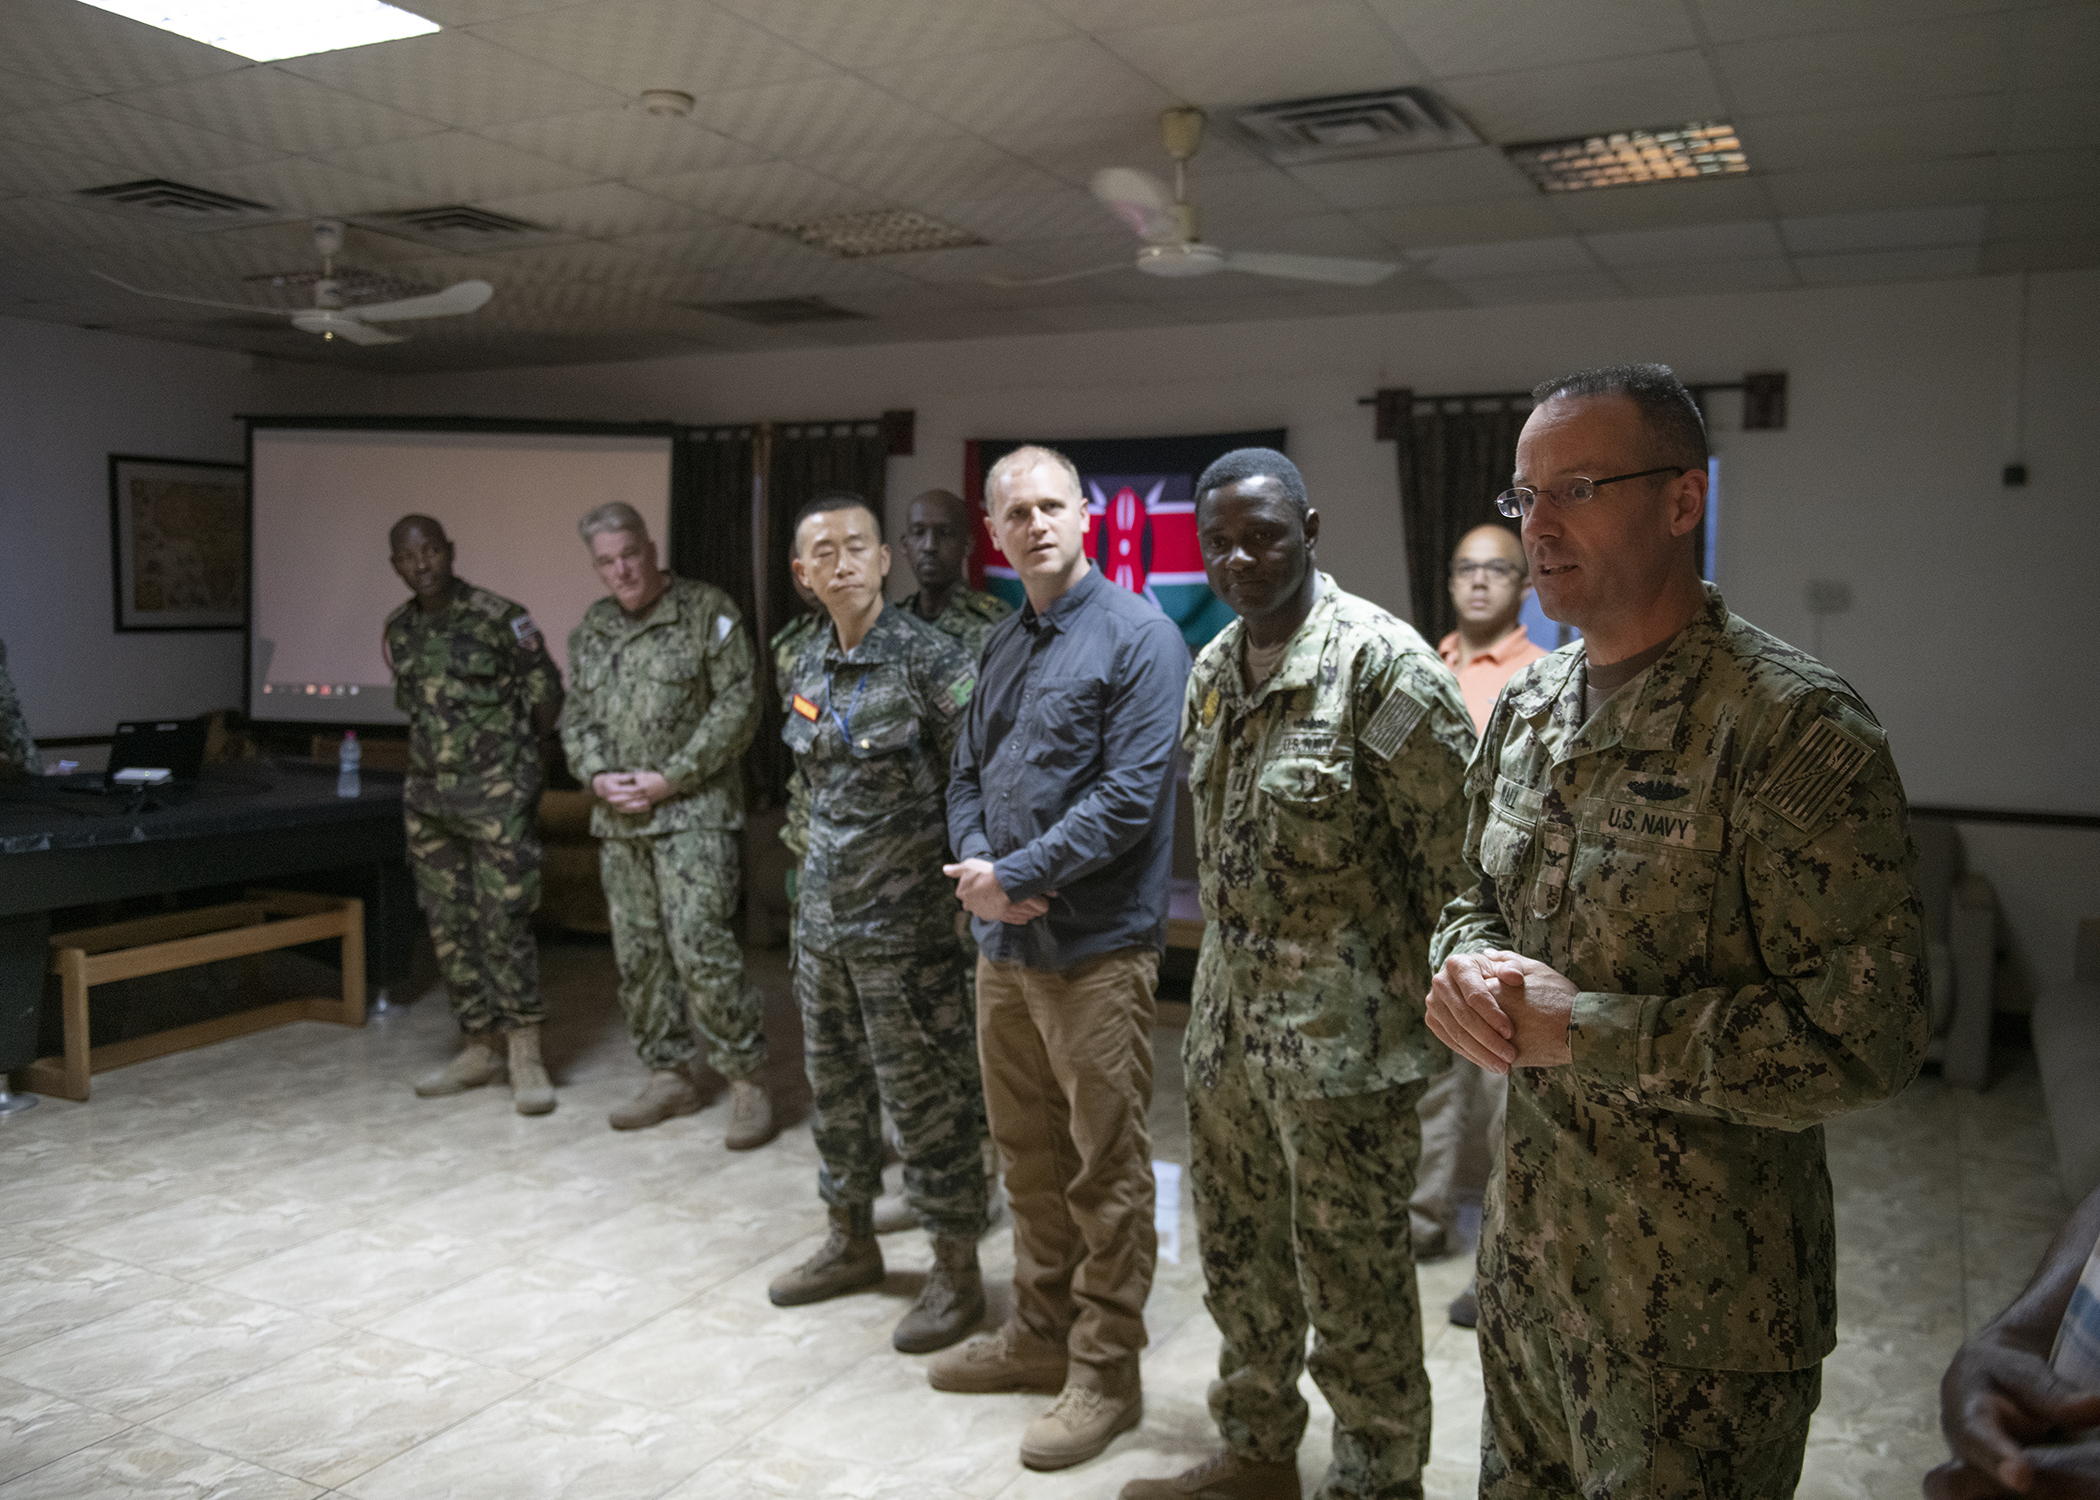 U.S. Navy Capt. Thomas Wall, chief of staff for Combined Joint Task Force-Horn of Africa (CJTF-HOA), greets multinational military partners during a cultural exchange event at Camp Lemonnier, Djibouti, March 27, 2019. CJTF-HOA holds monthly exchange events with multinational military partners affiliated with Camp Lemonnier to strengthen alliances and attract new partners in the combined joint military environment. (U.S. Air Force photo by Tech. Sgt. Shawn Nickel)